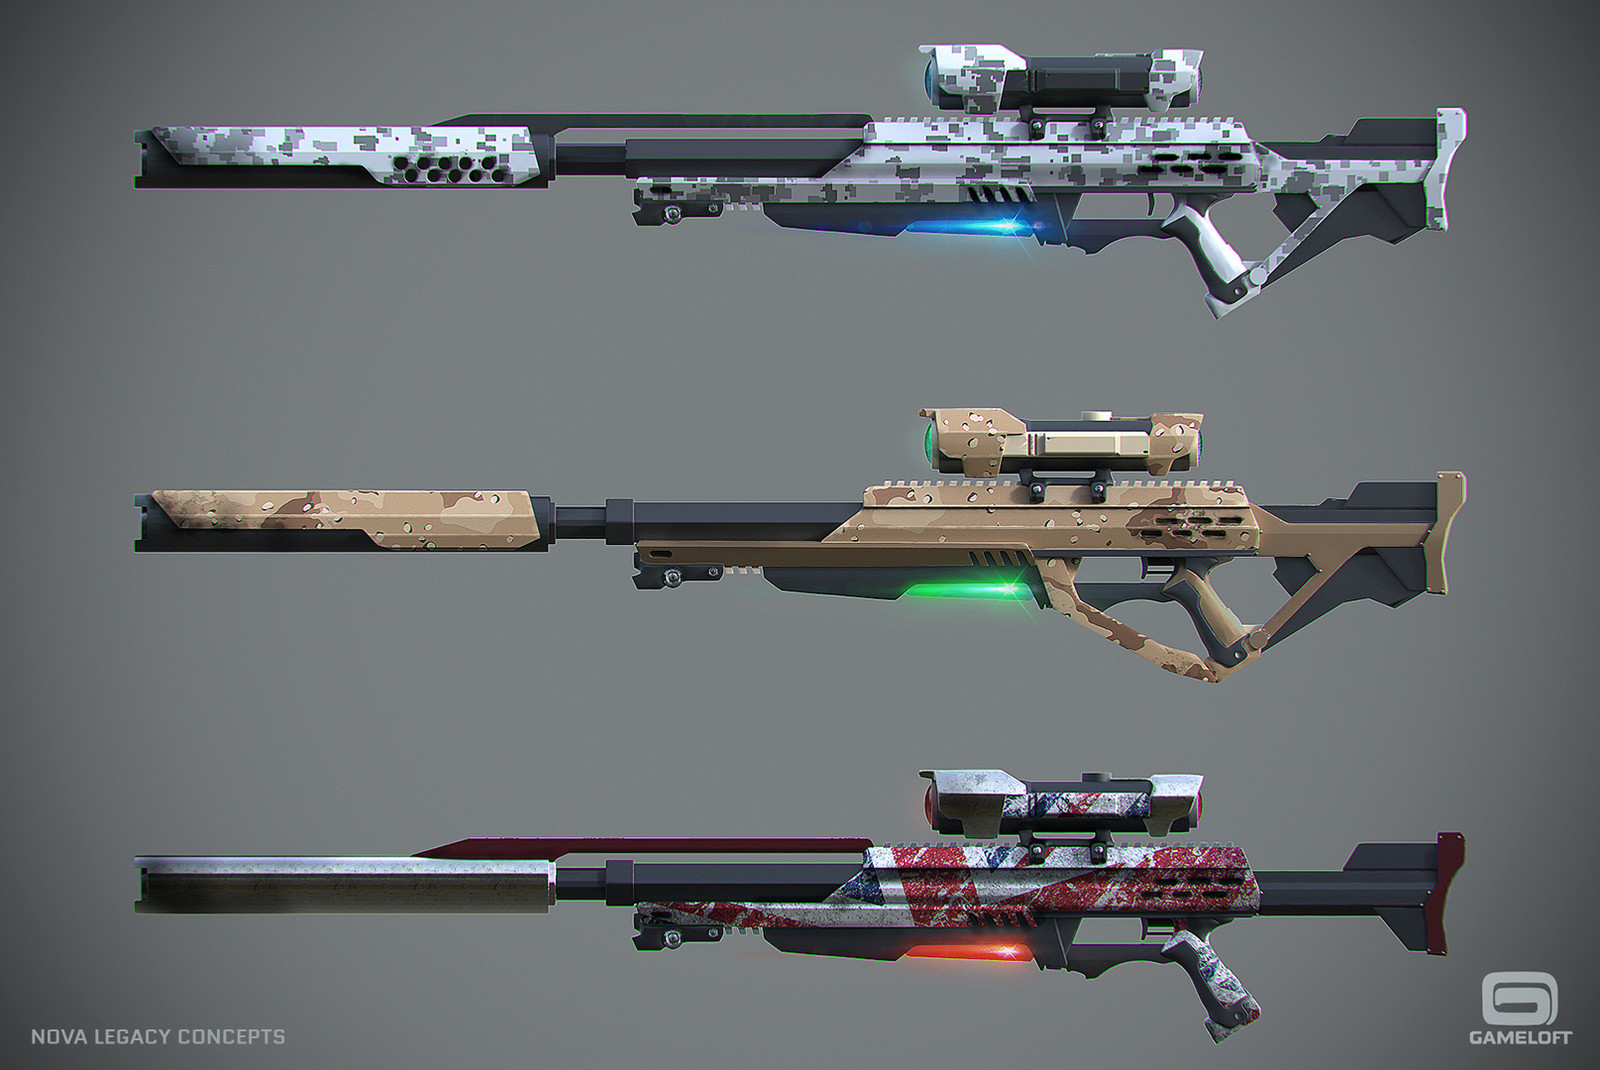 Nova Legacy - Weapons Concepts